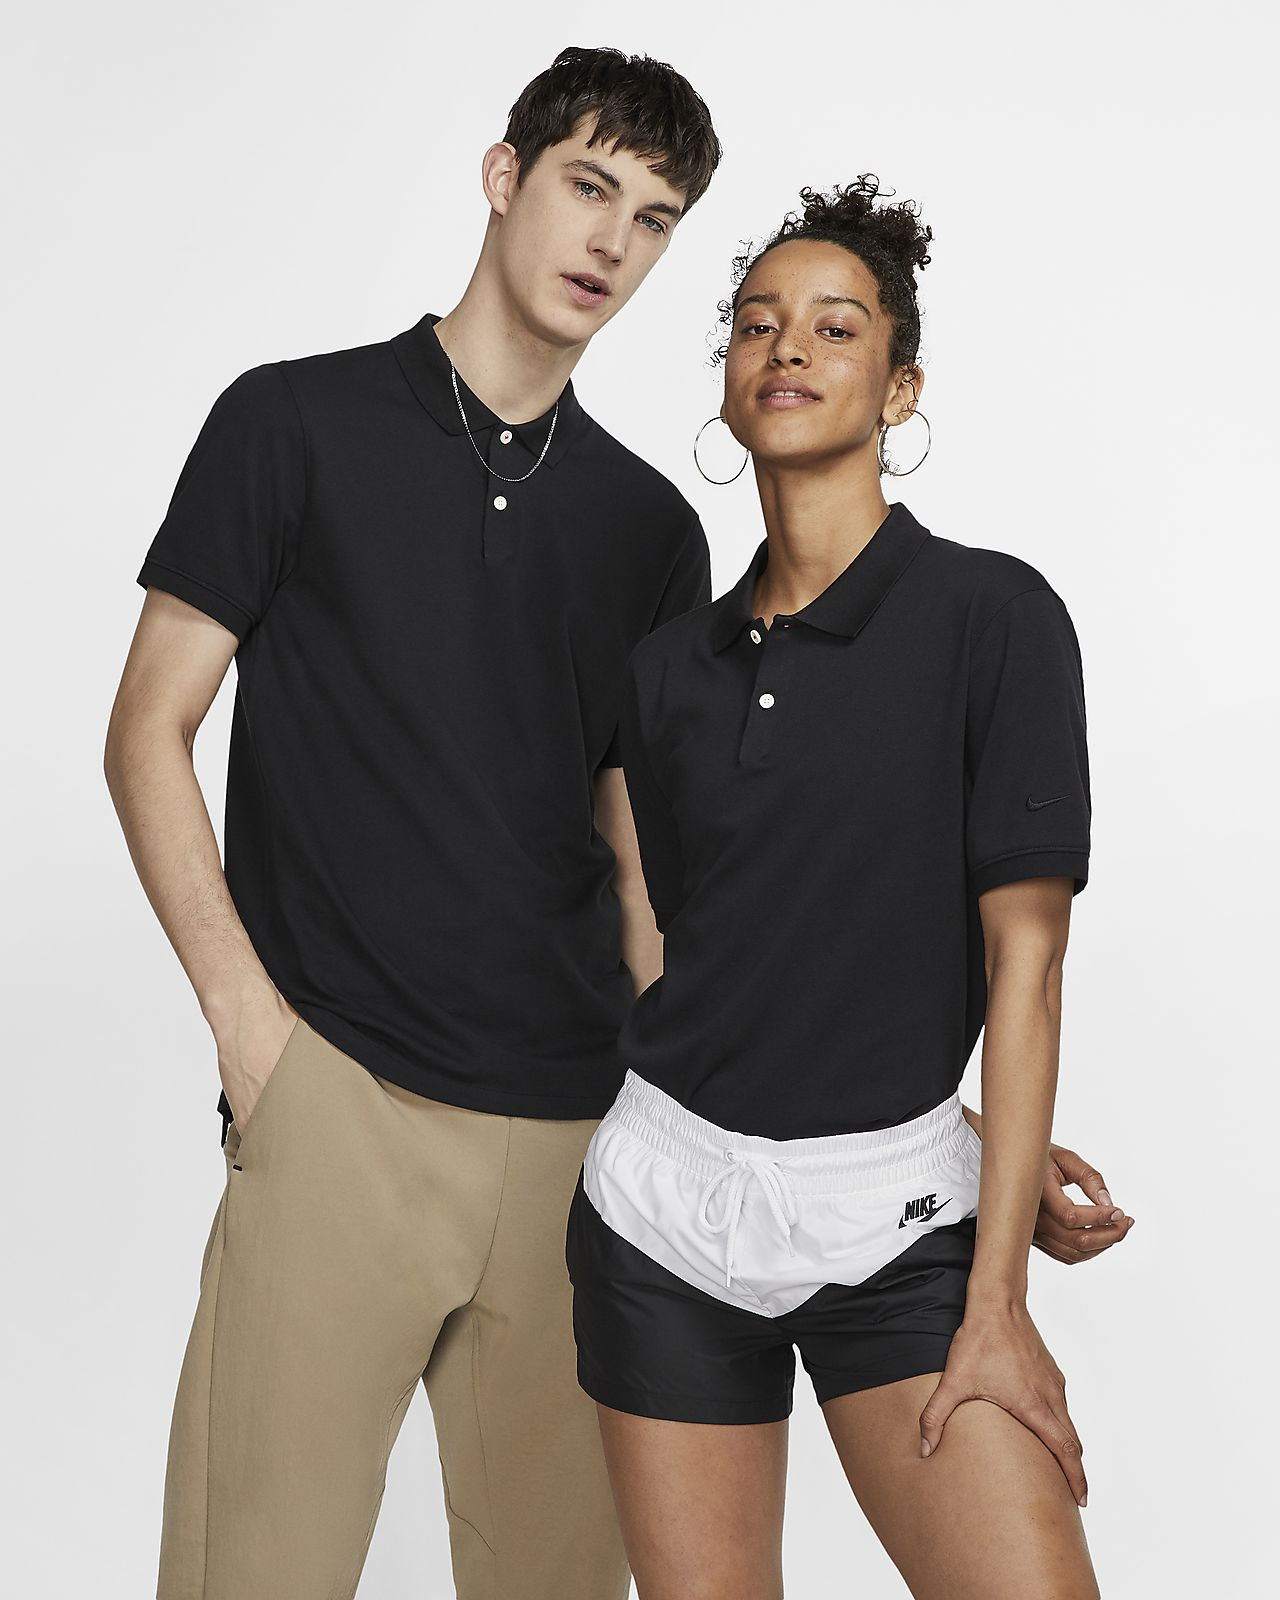 The Nike Polo (Without Orange Collar Label) Men's Slim-Fit Polo